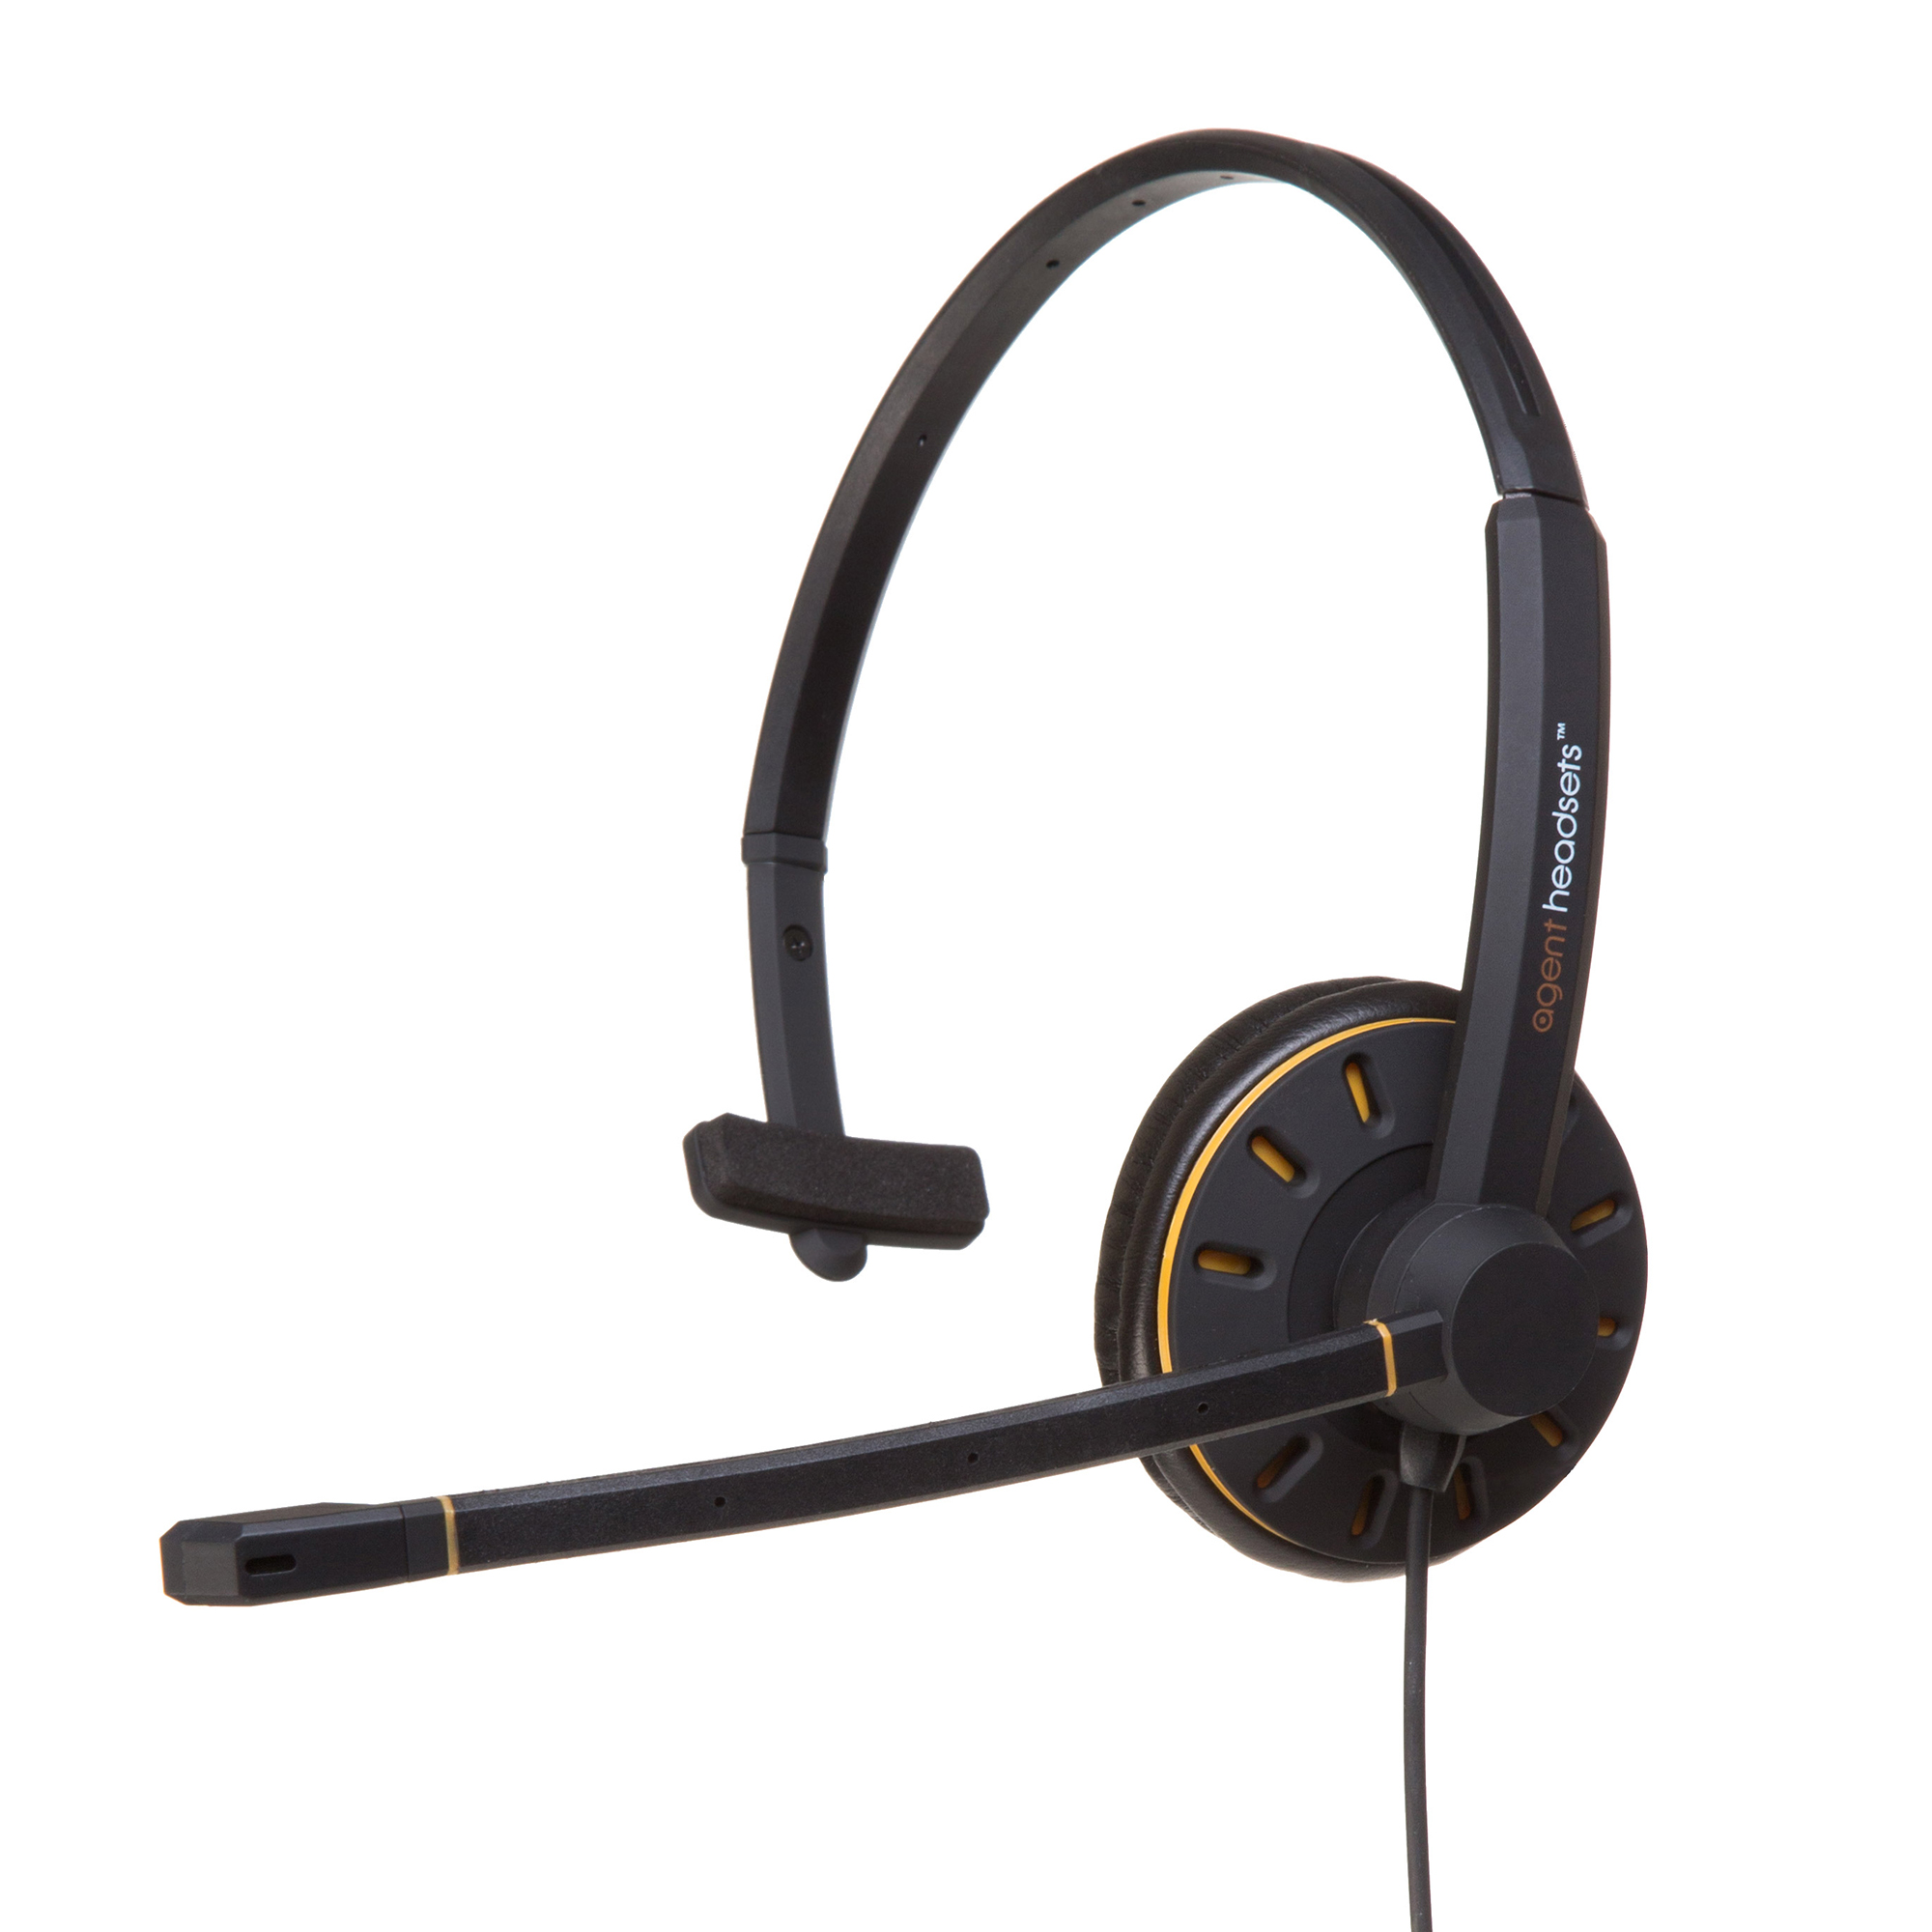 Corded Headsets Agent AU 1 Monaural Noise Cancelling UC USB Headset